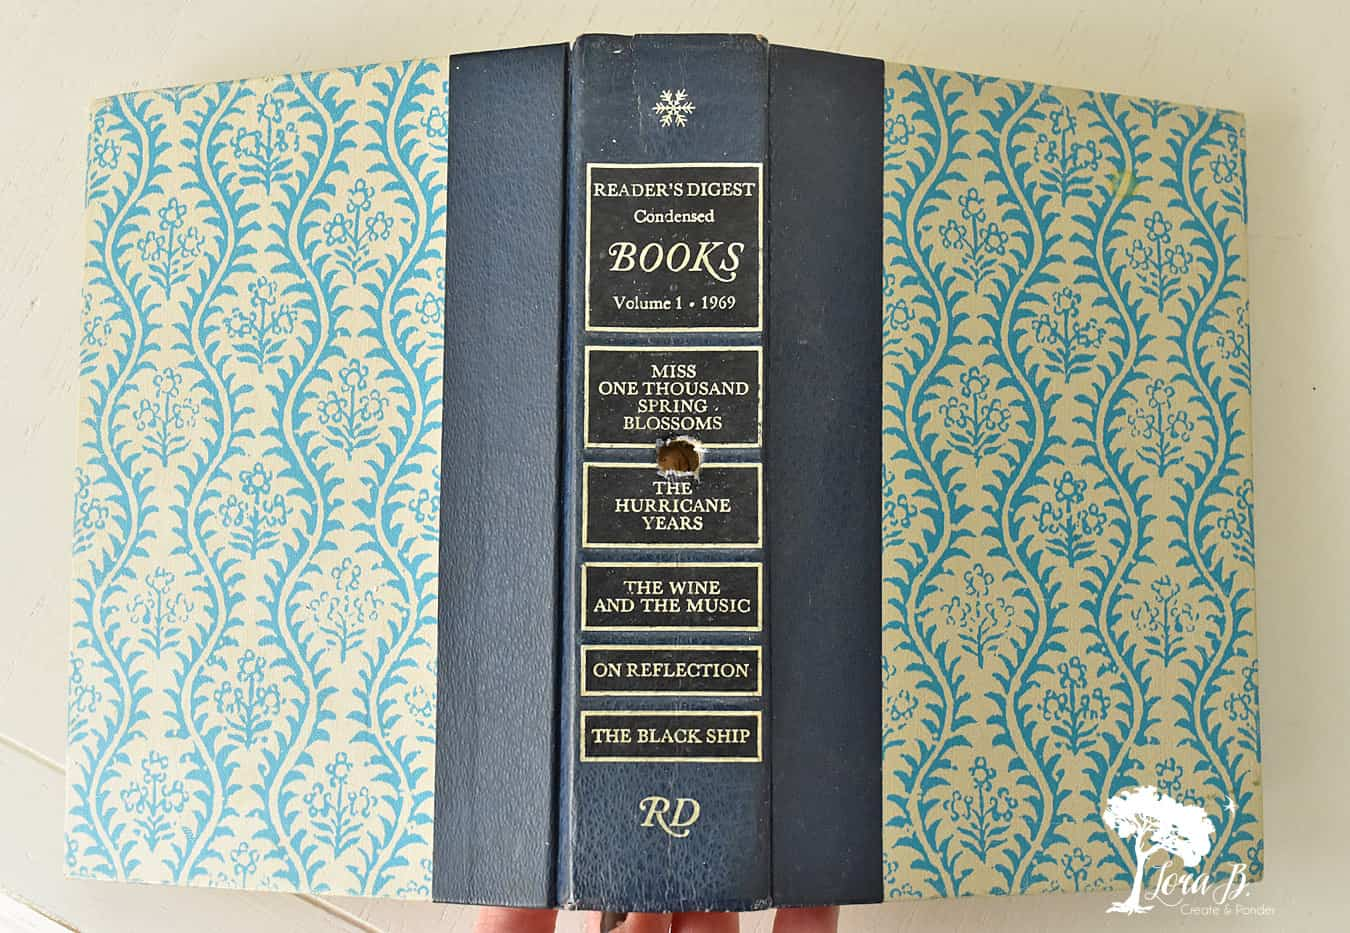 Reader's Digest book